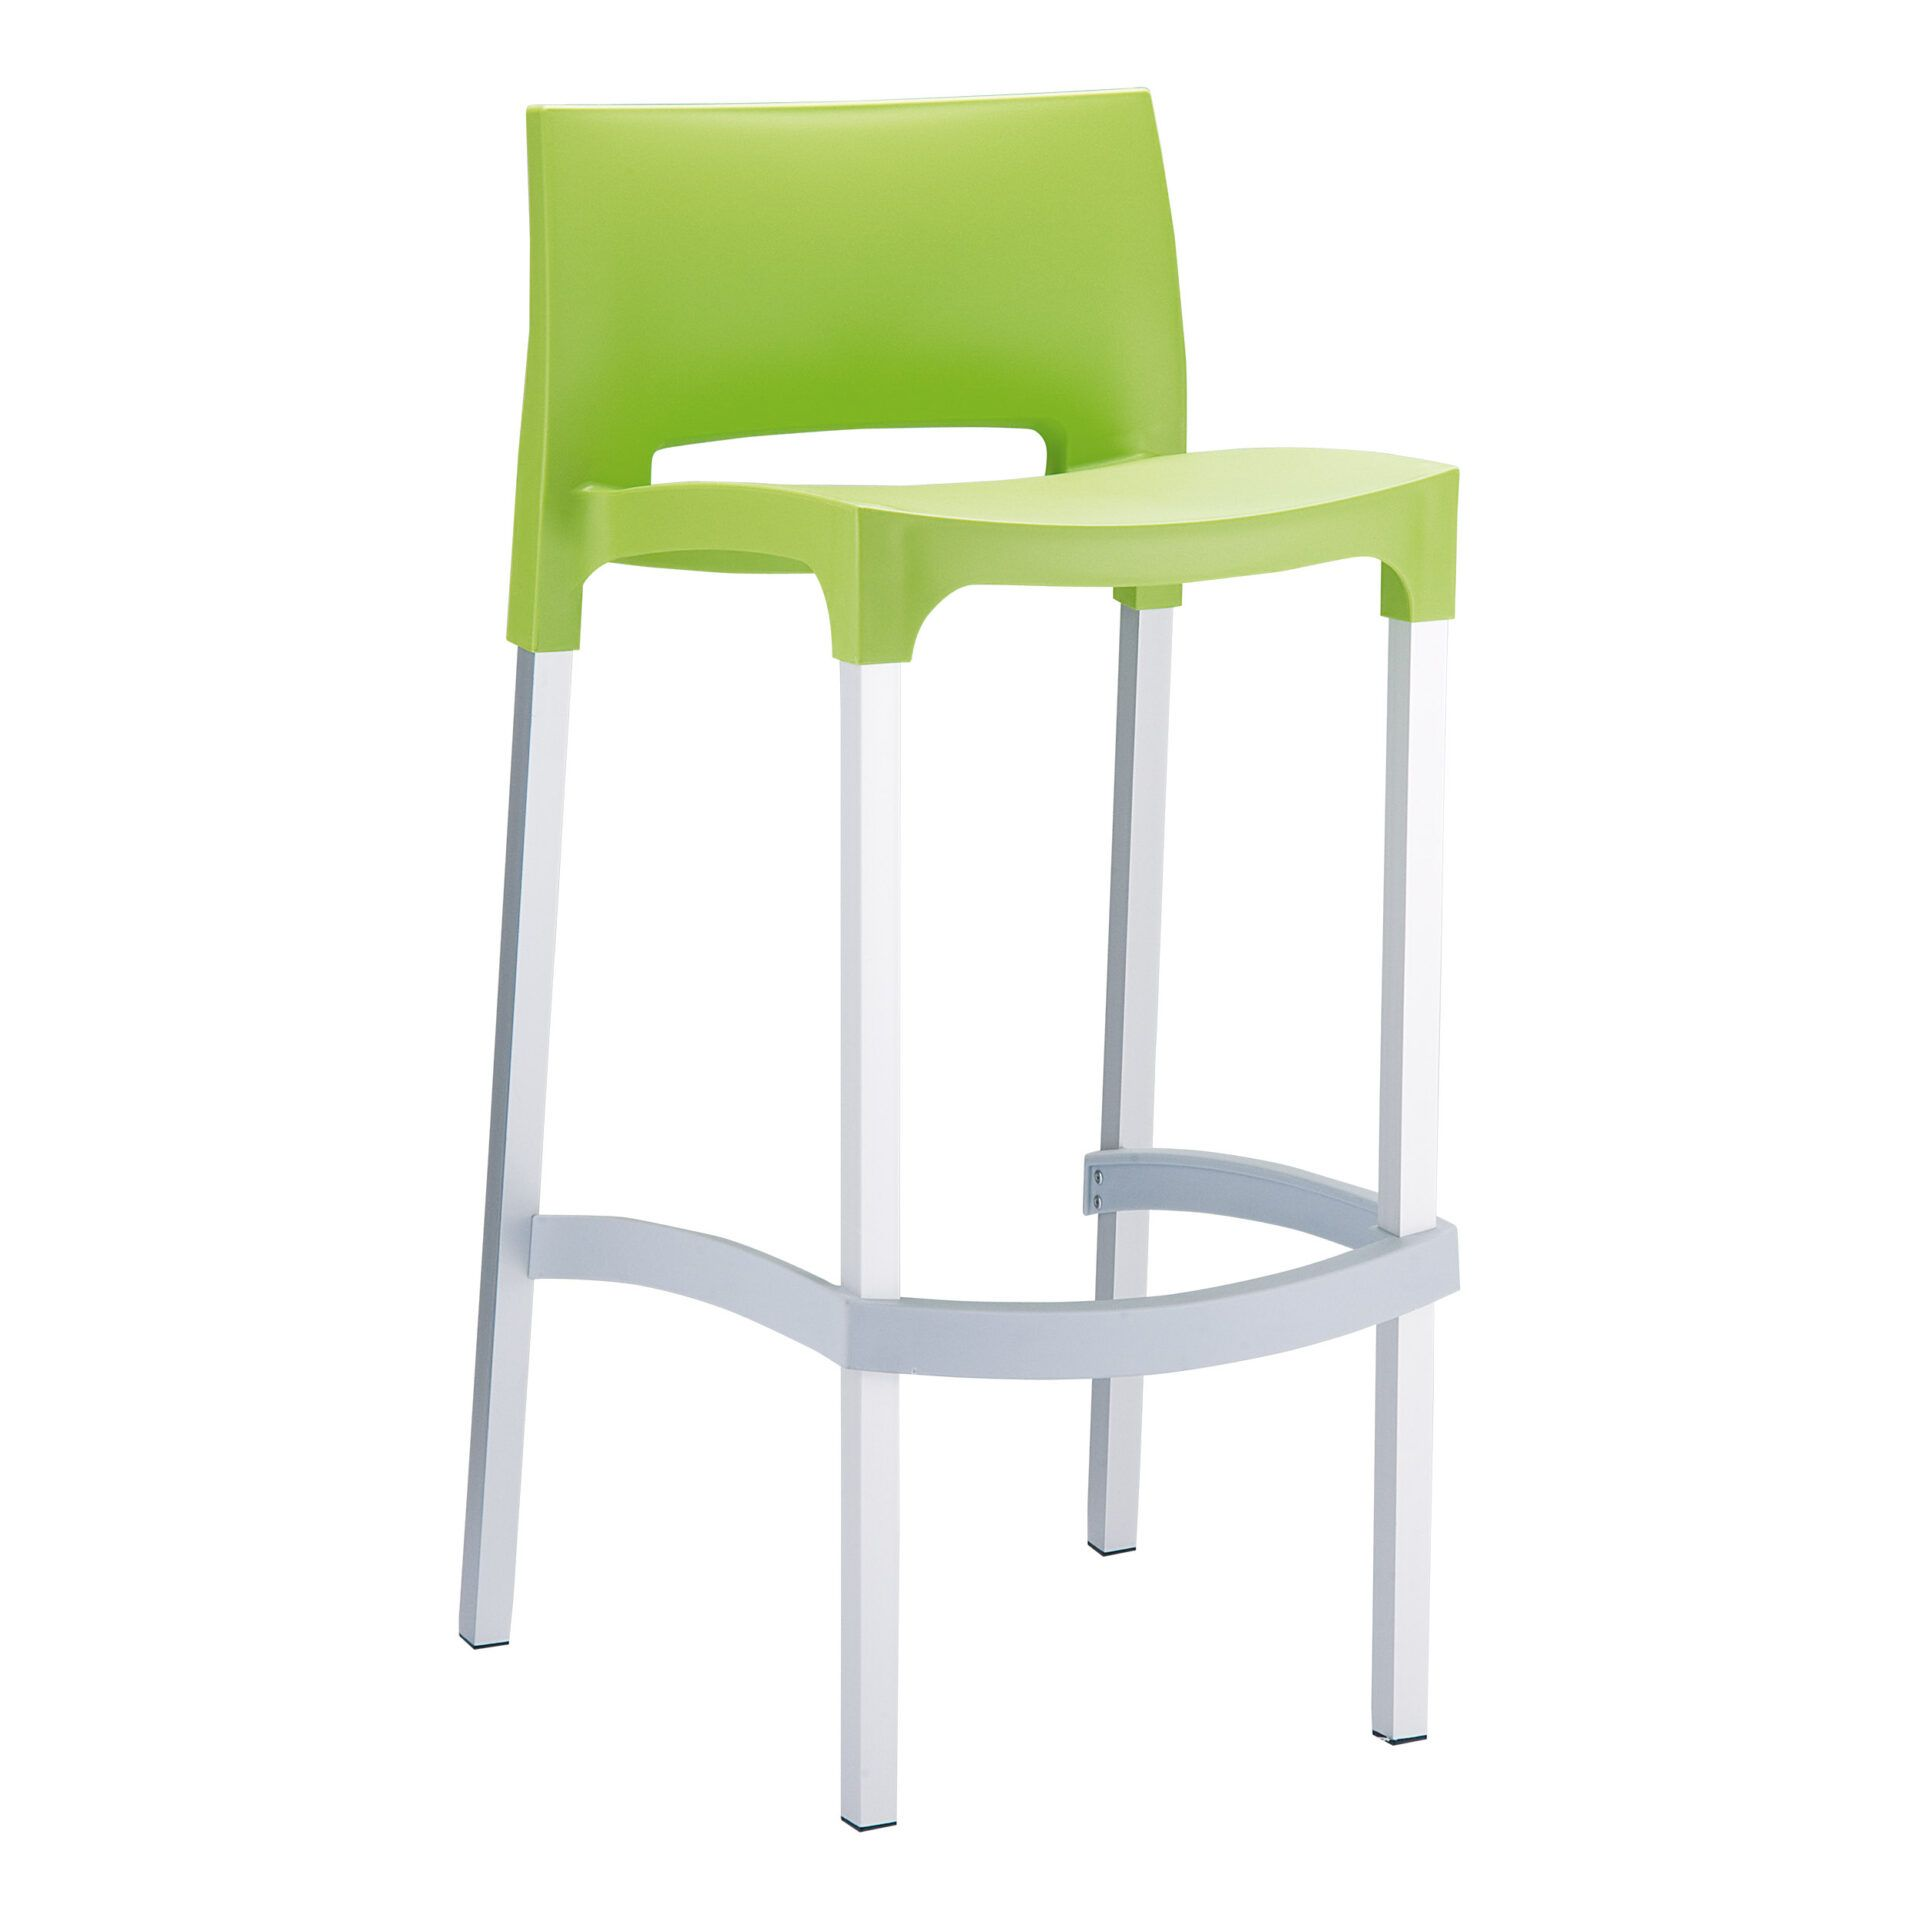 commercial plastic gio barstool green front side